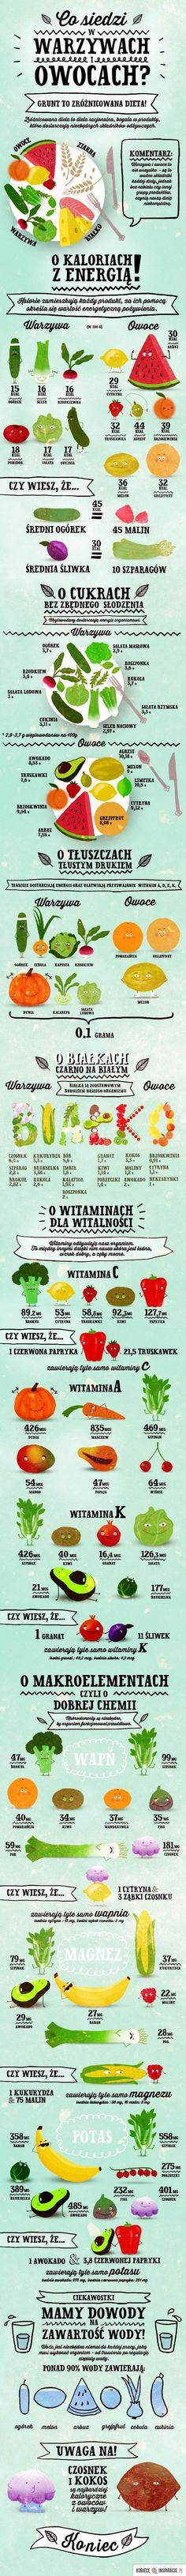 Co siedzi w owocach i warzywach Healthy Tips, Healthy Eating, Healthy Recipes, Health Diet, Health Fitness, Food Facts, Healthier You, Clean Recipes, Superfood